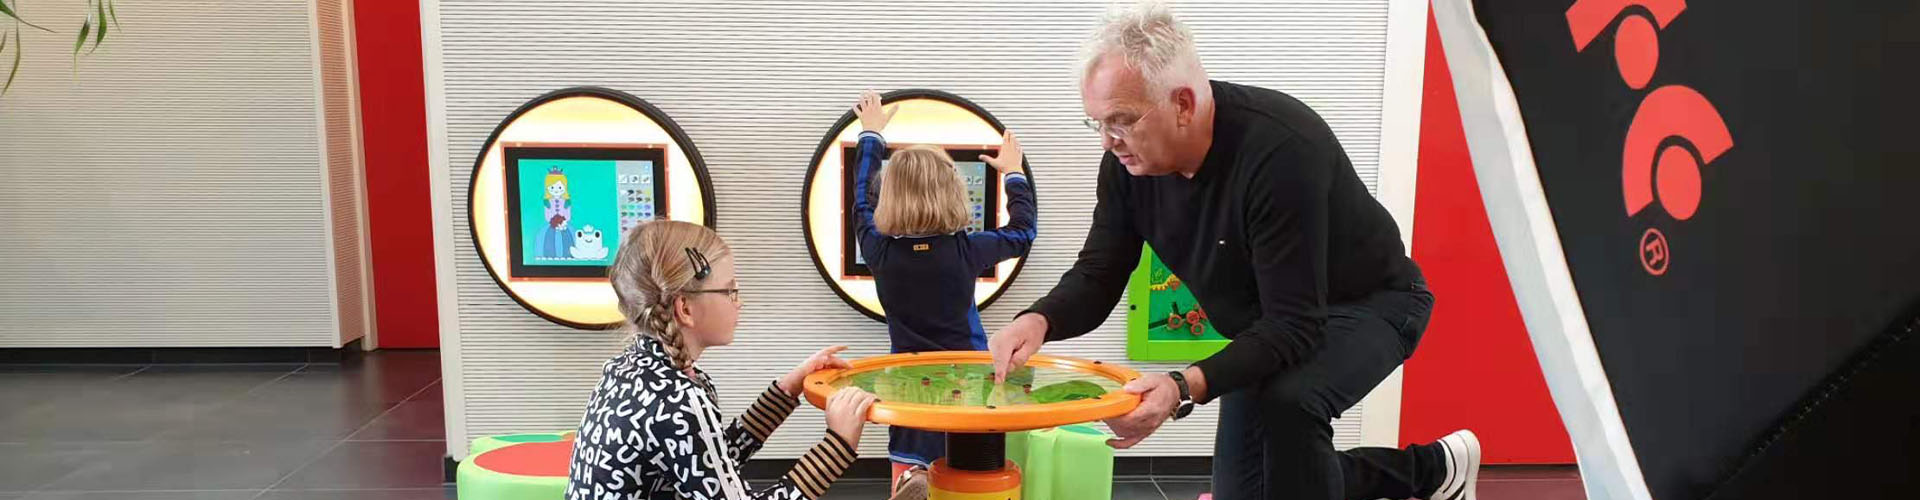 this image shows kids with a playcorner and Marco Lankman, CEO